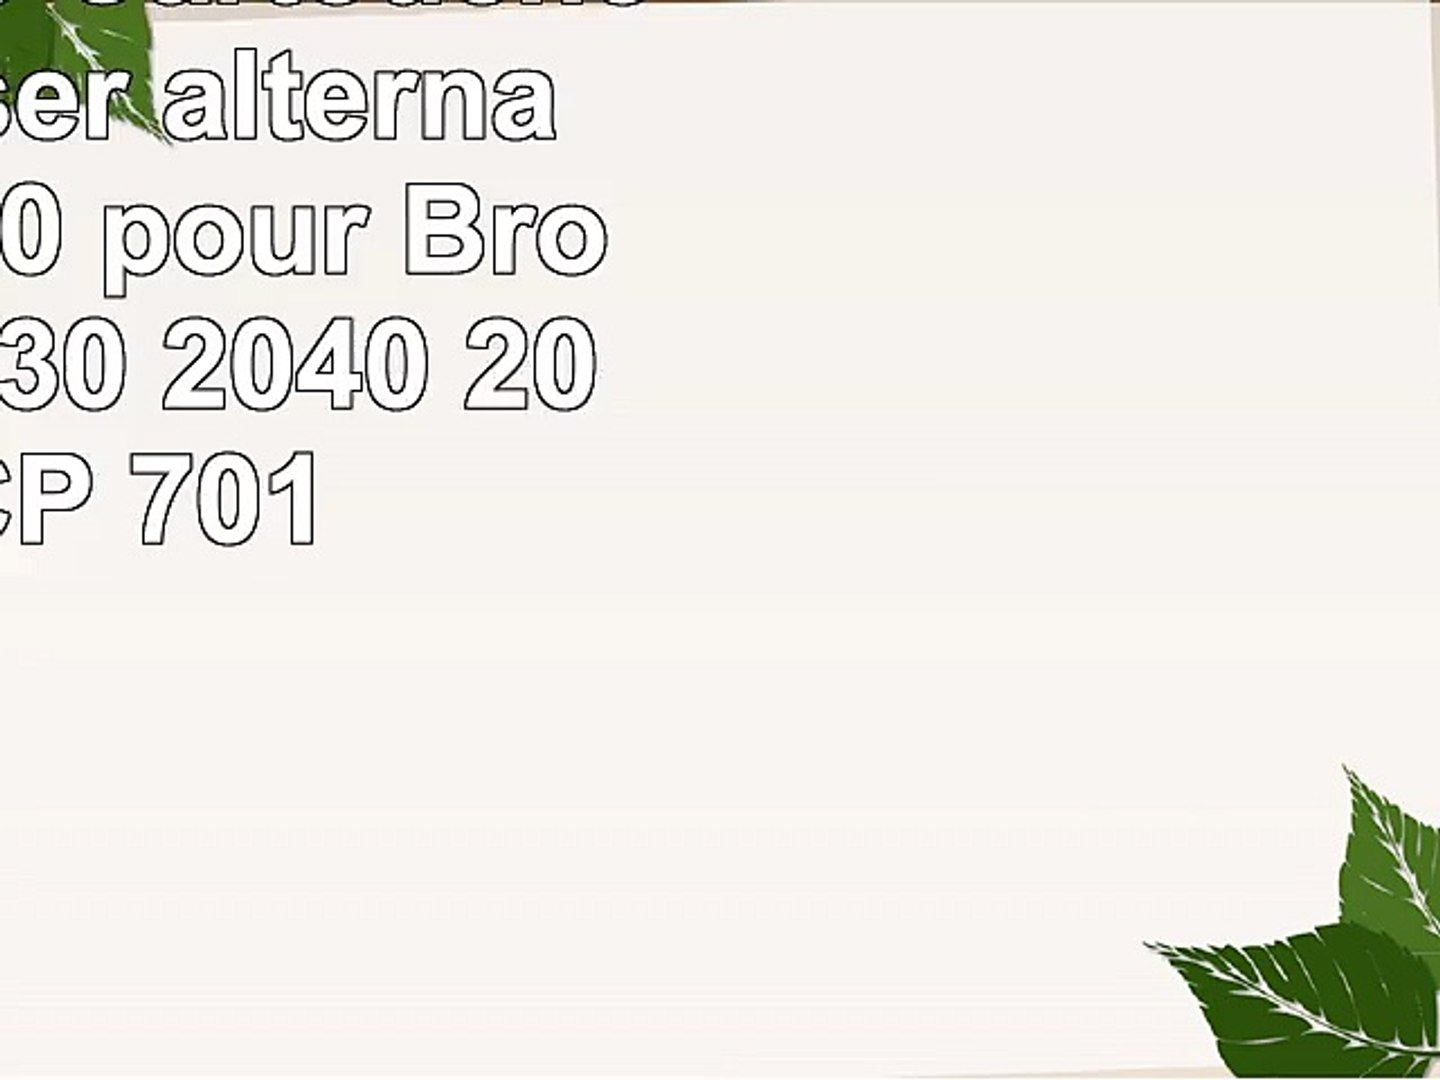 3x TONER COMPATIBILE PER BROTHER mfc-7220//mfc-7225n//mfc-7420//mfc-7820